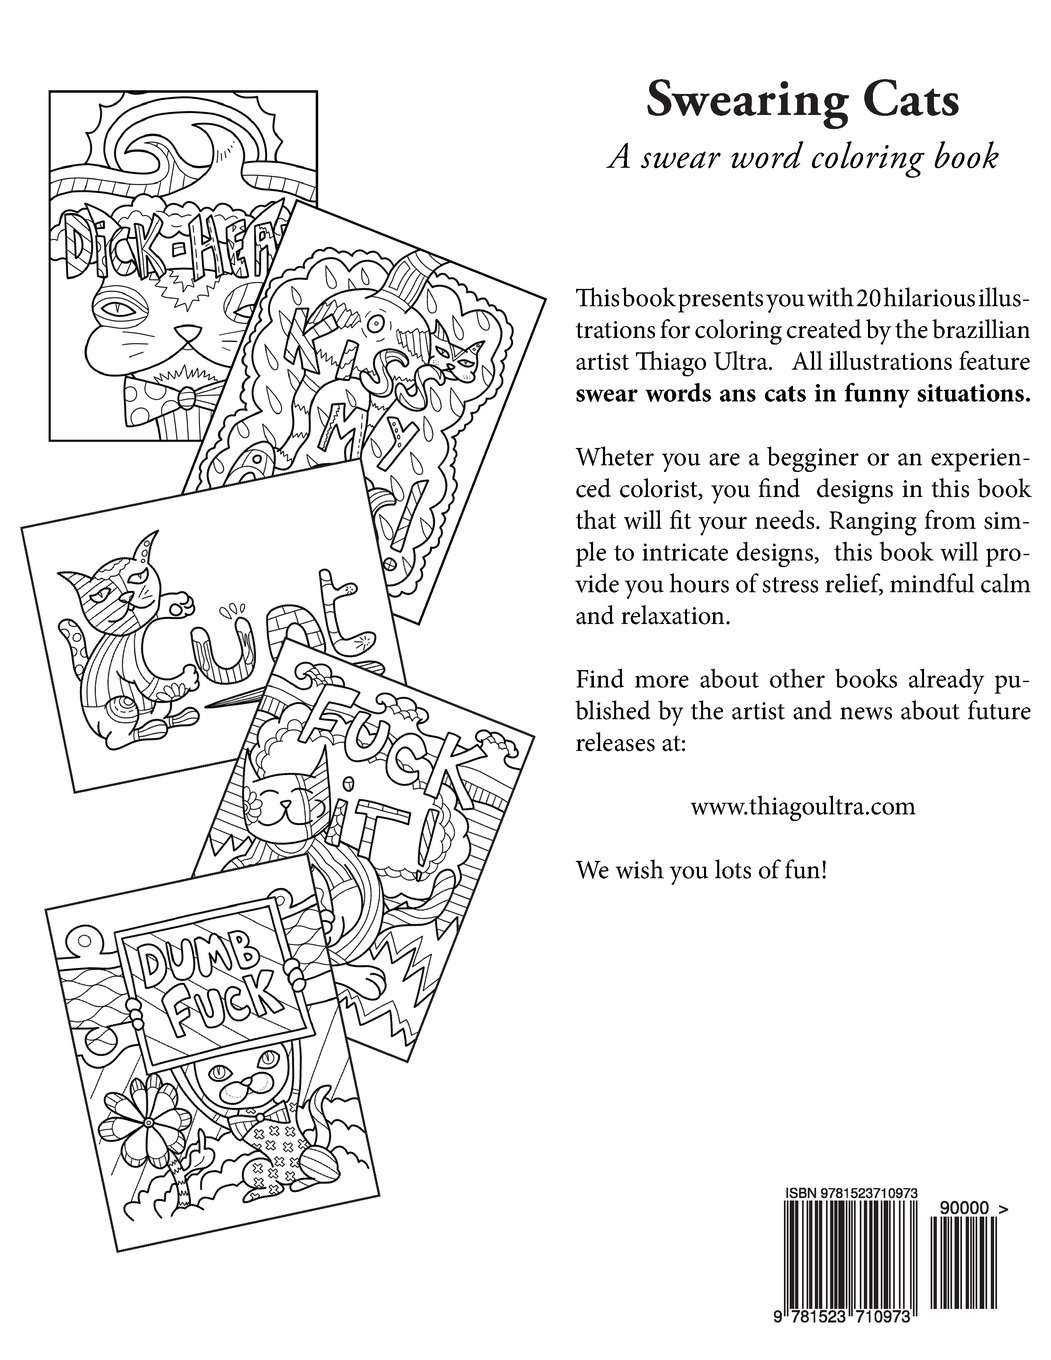 Swearing Cats A Swear Word Coloring Book Featuring Hilarious Sweary Books Cat Thiago Ultra 9781523710973 Amazon